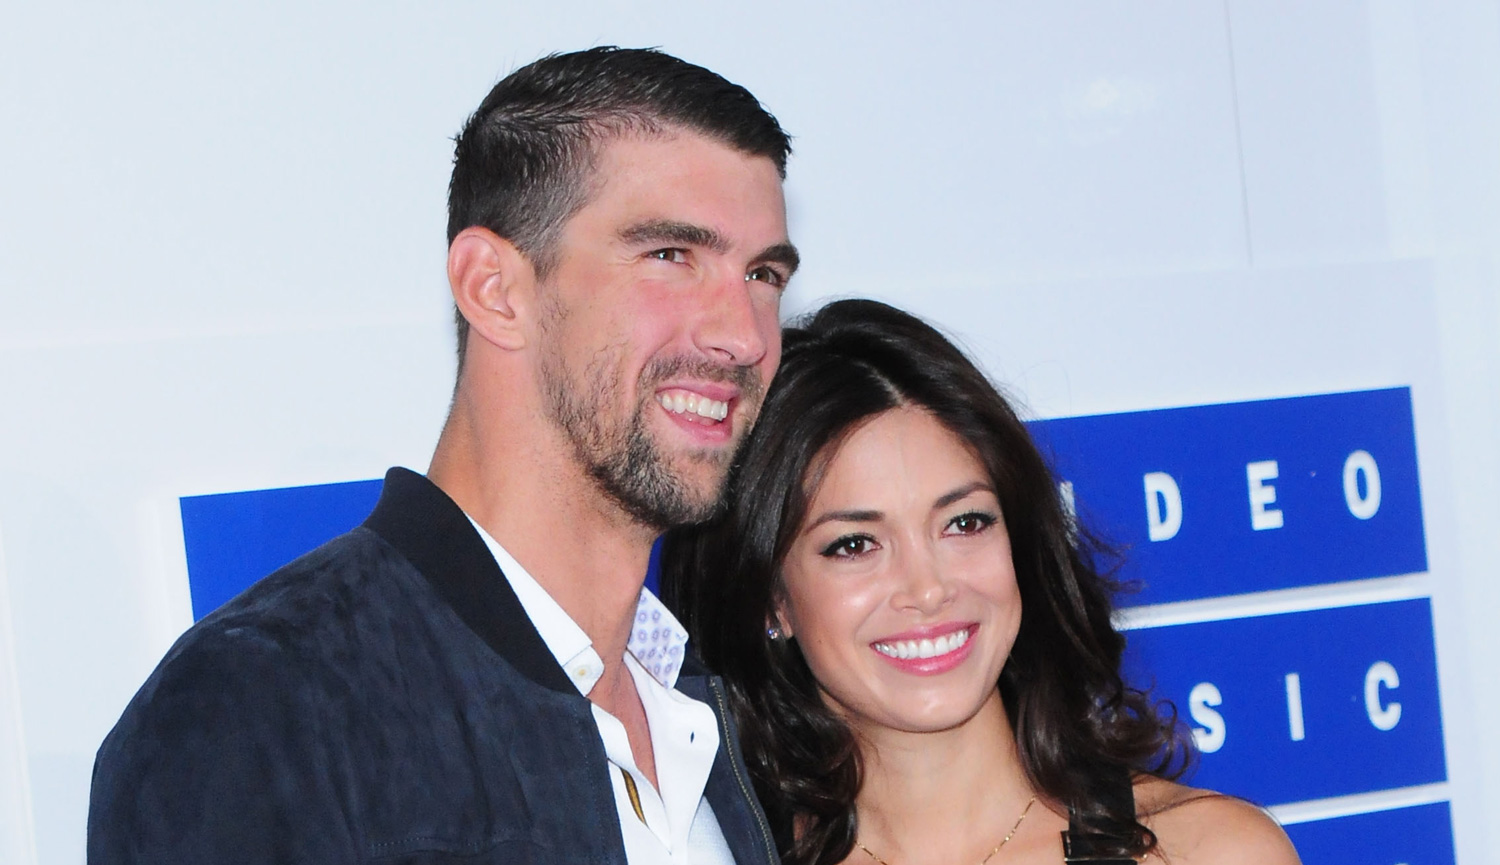 Michael Phelps & Wife Nicole Johnson Share Wedding Video!